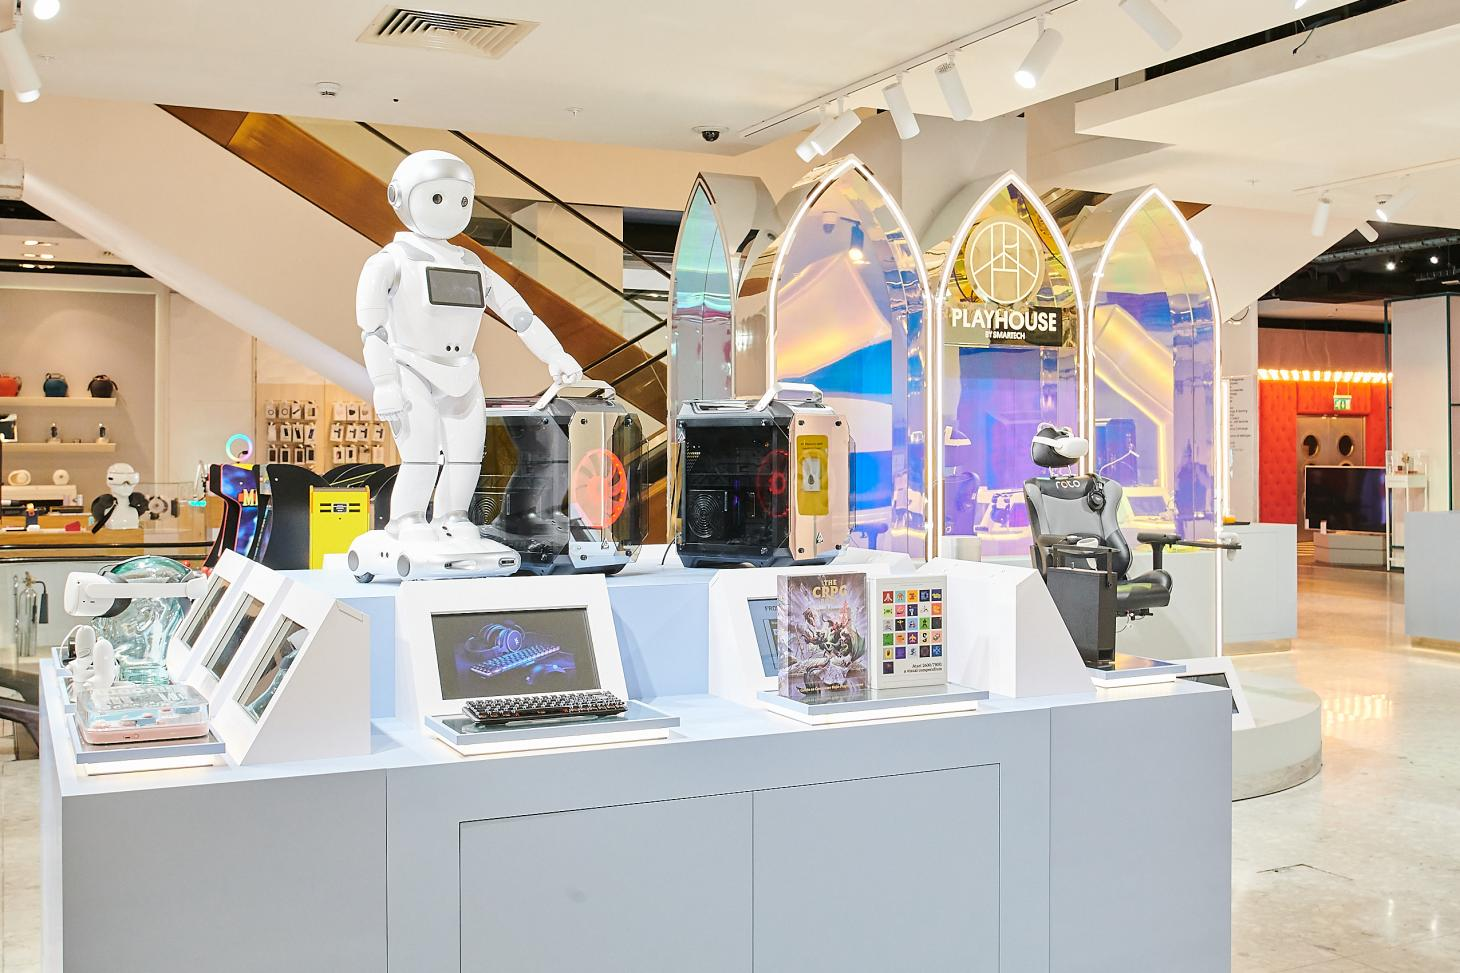 The Playhouse by Smartech space at Selfridges